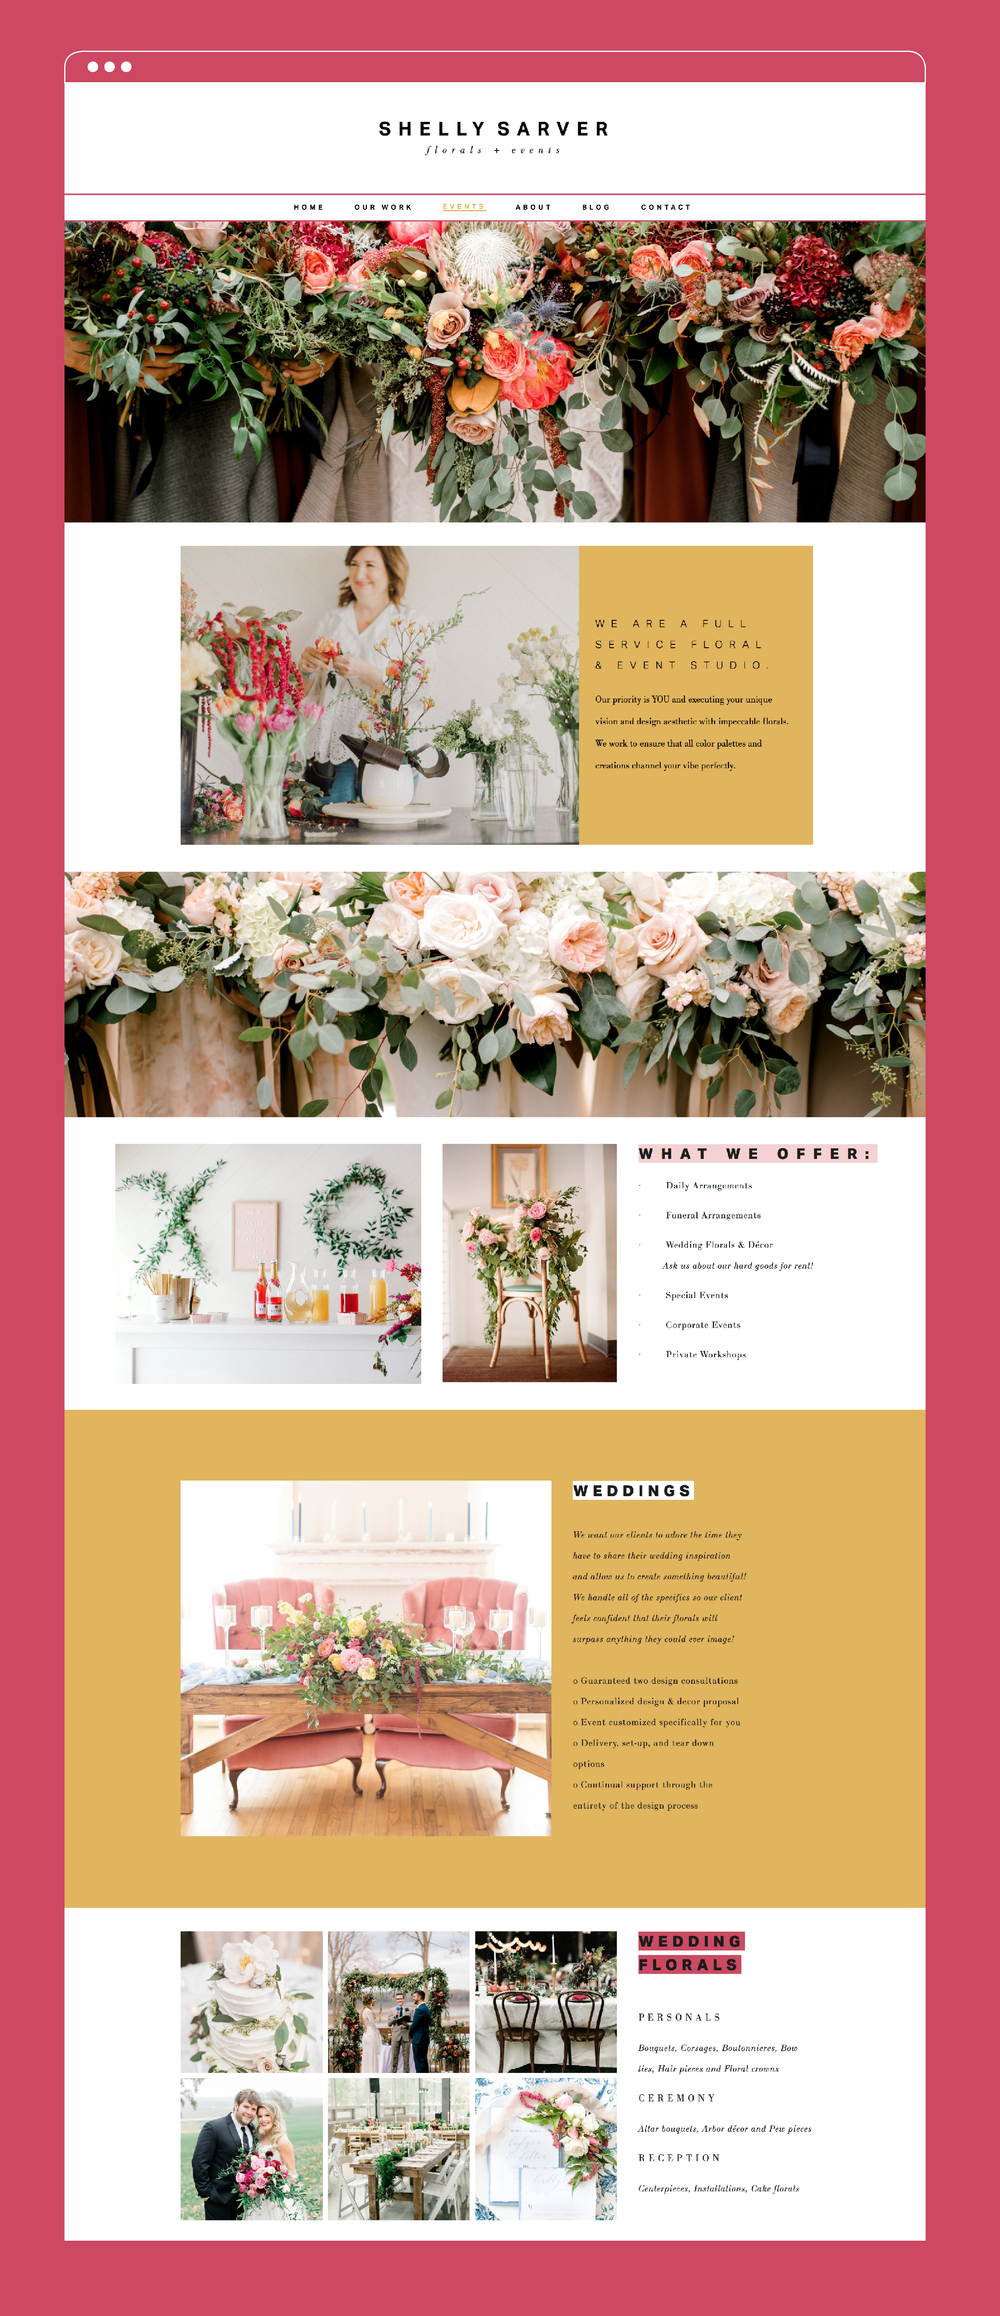 shellysarver-florals+website+florist copy.png